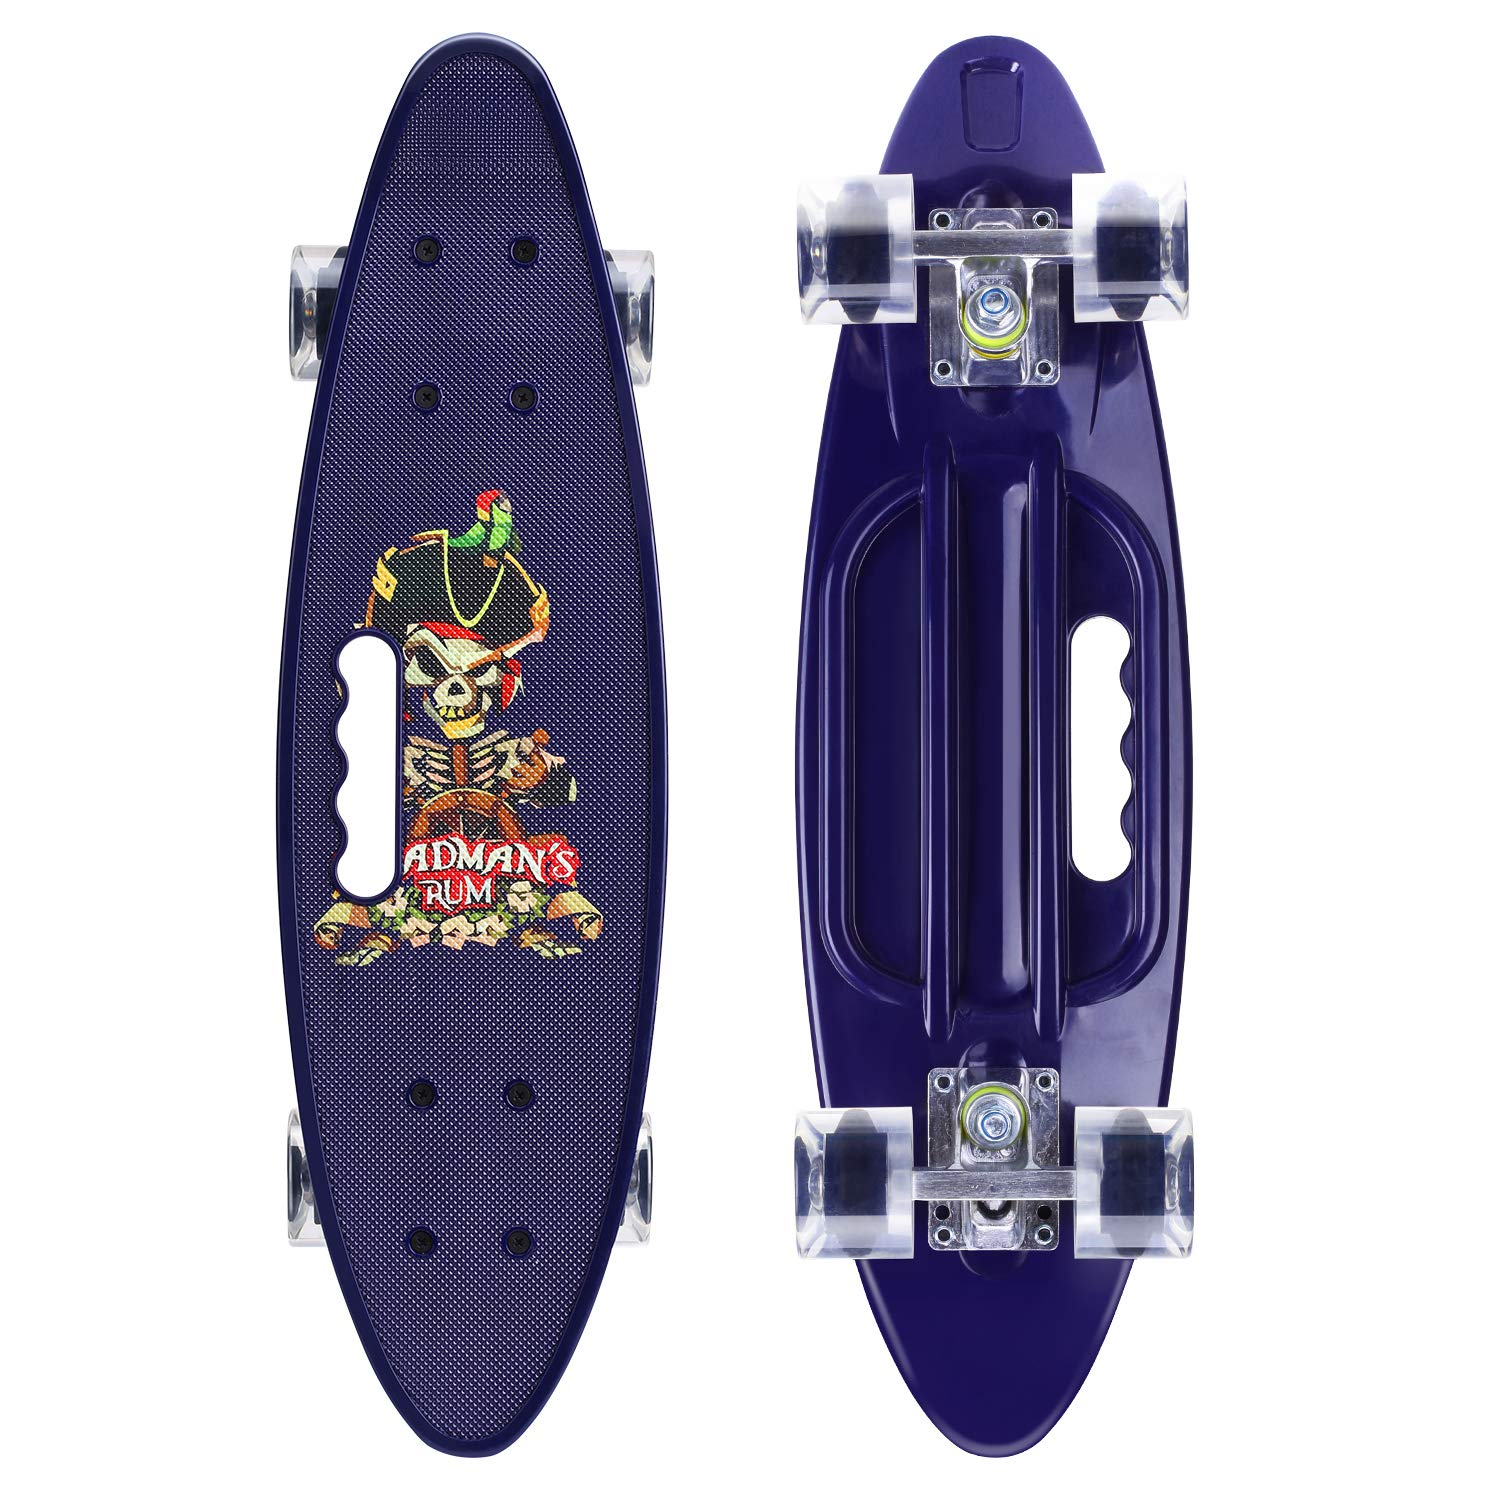 ENKEEO 22 Inch Cruiser Skateboard Complete Plastic Banana Board with Bendable Deck and Smooth PU Casters for Kids Boys Youths Beginners, 220 Ibs. (Sea Rover)